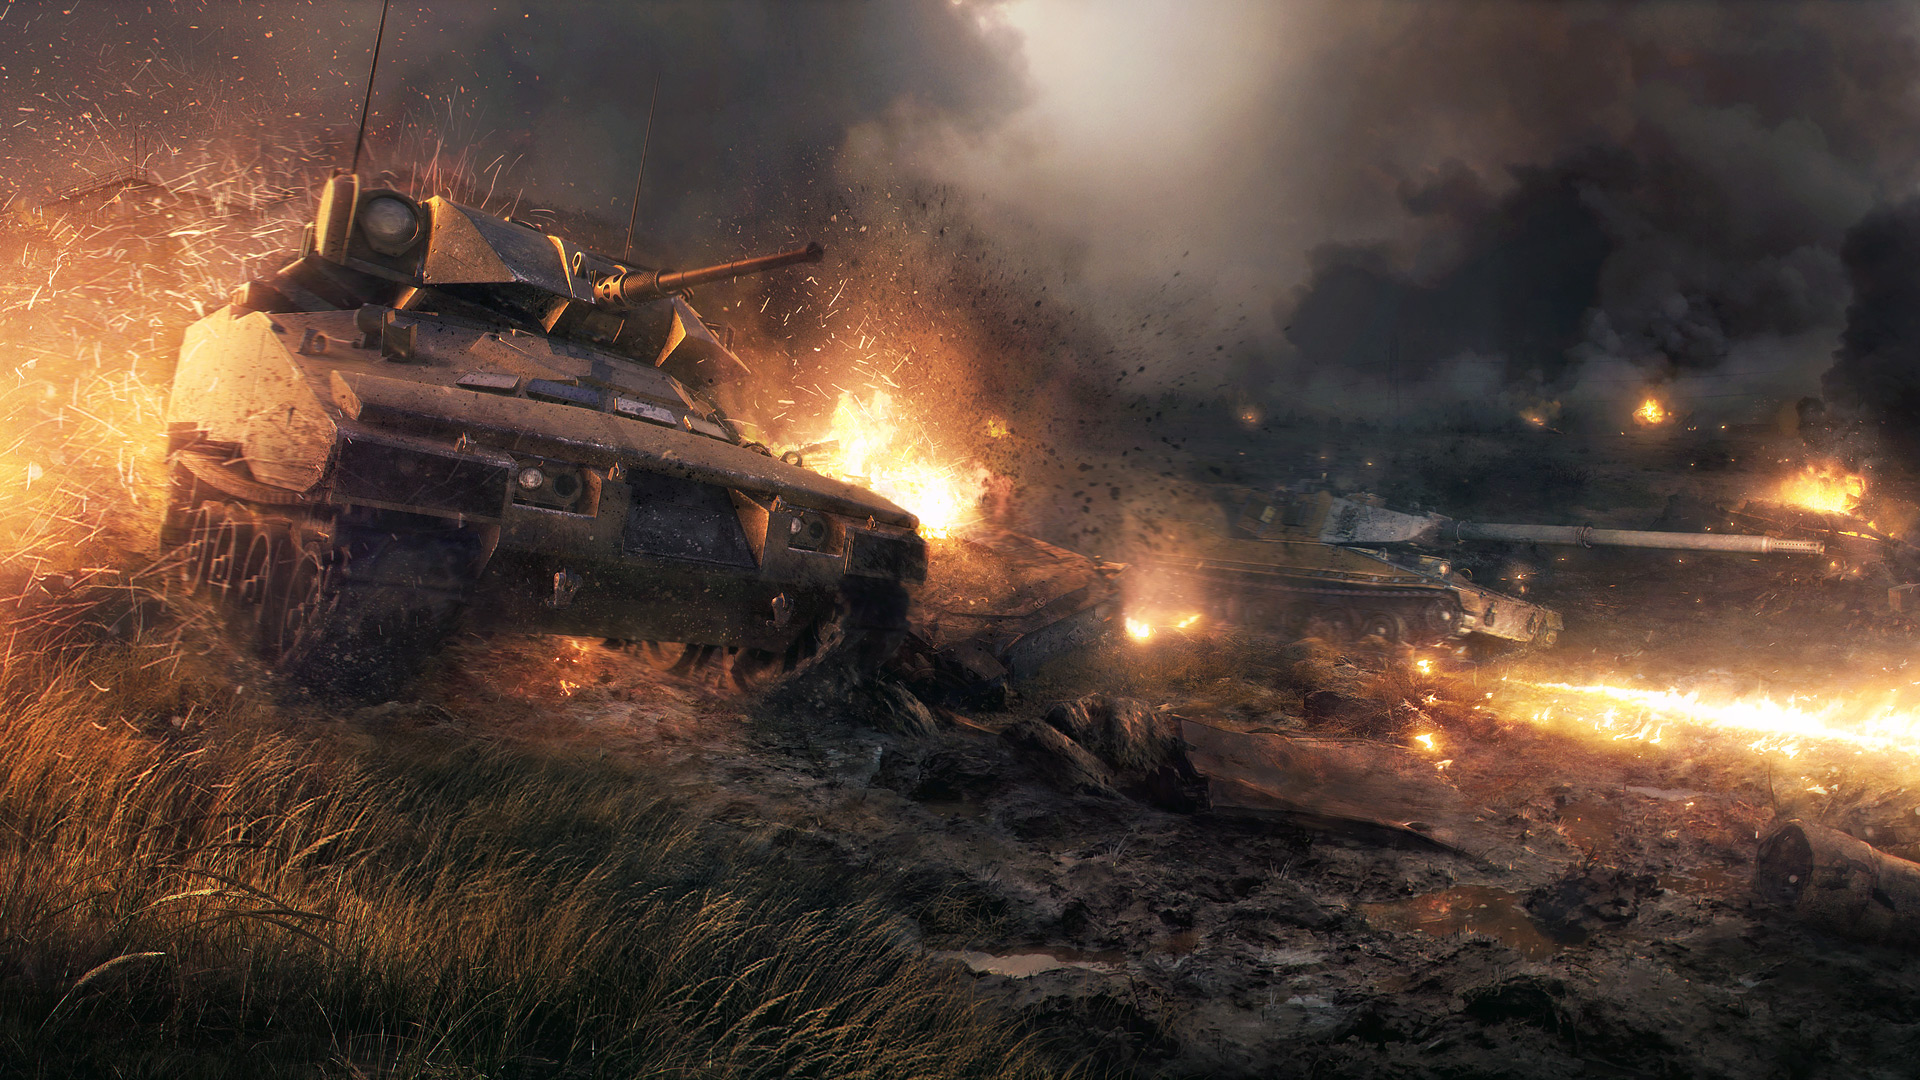 Wallpapers armored warfare official website voltagebd Images